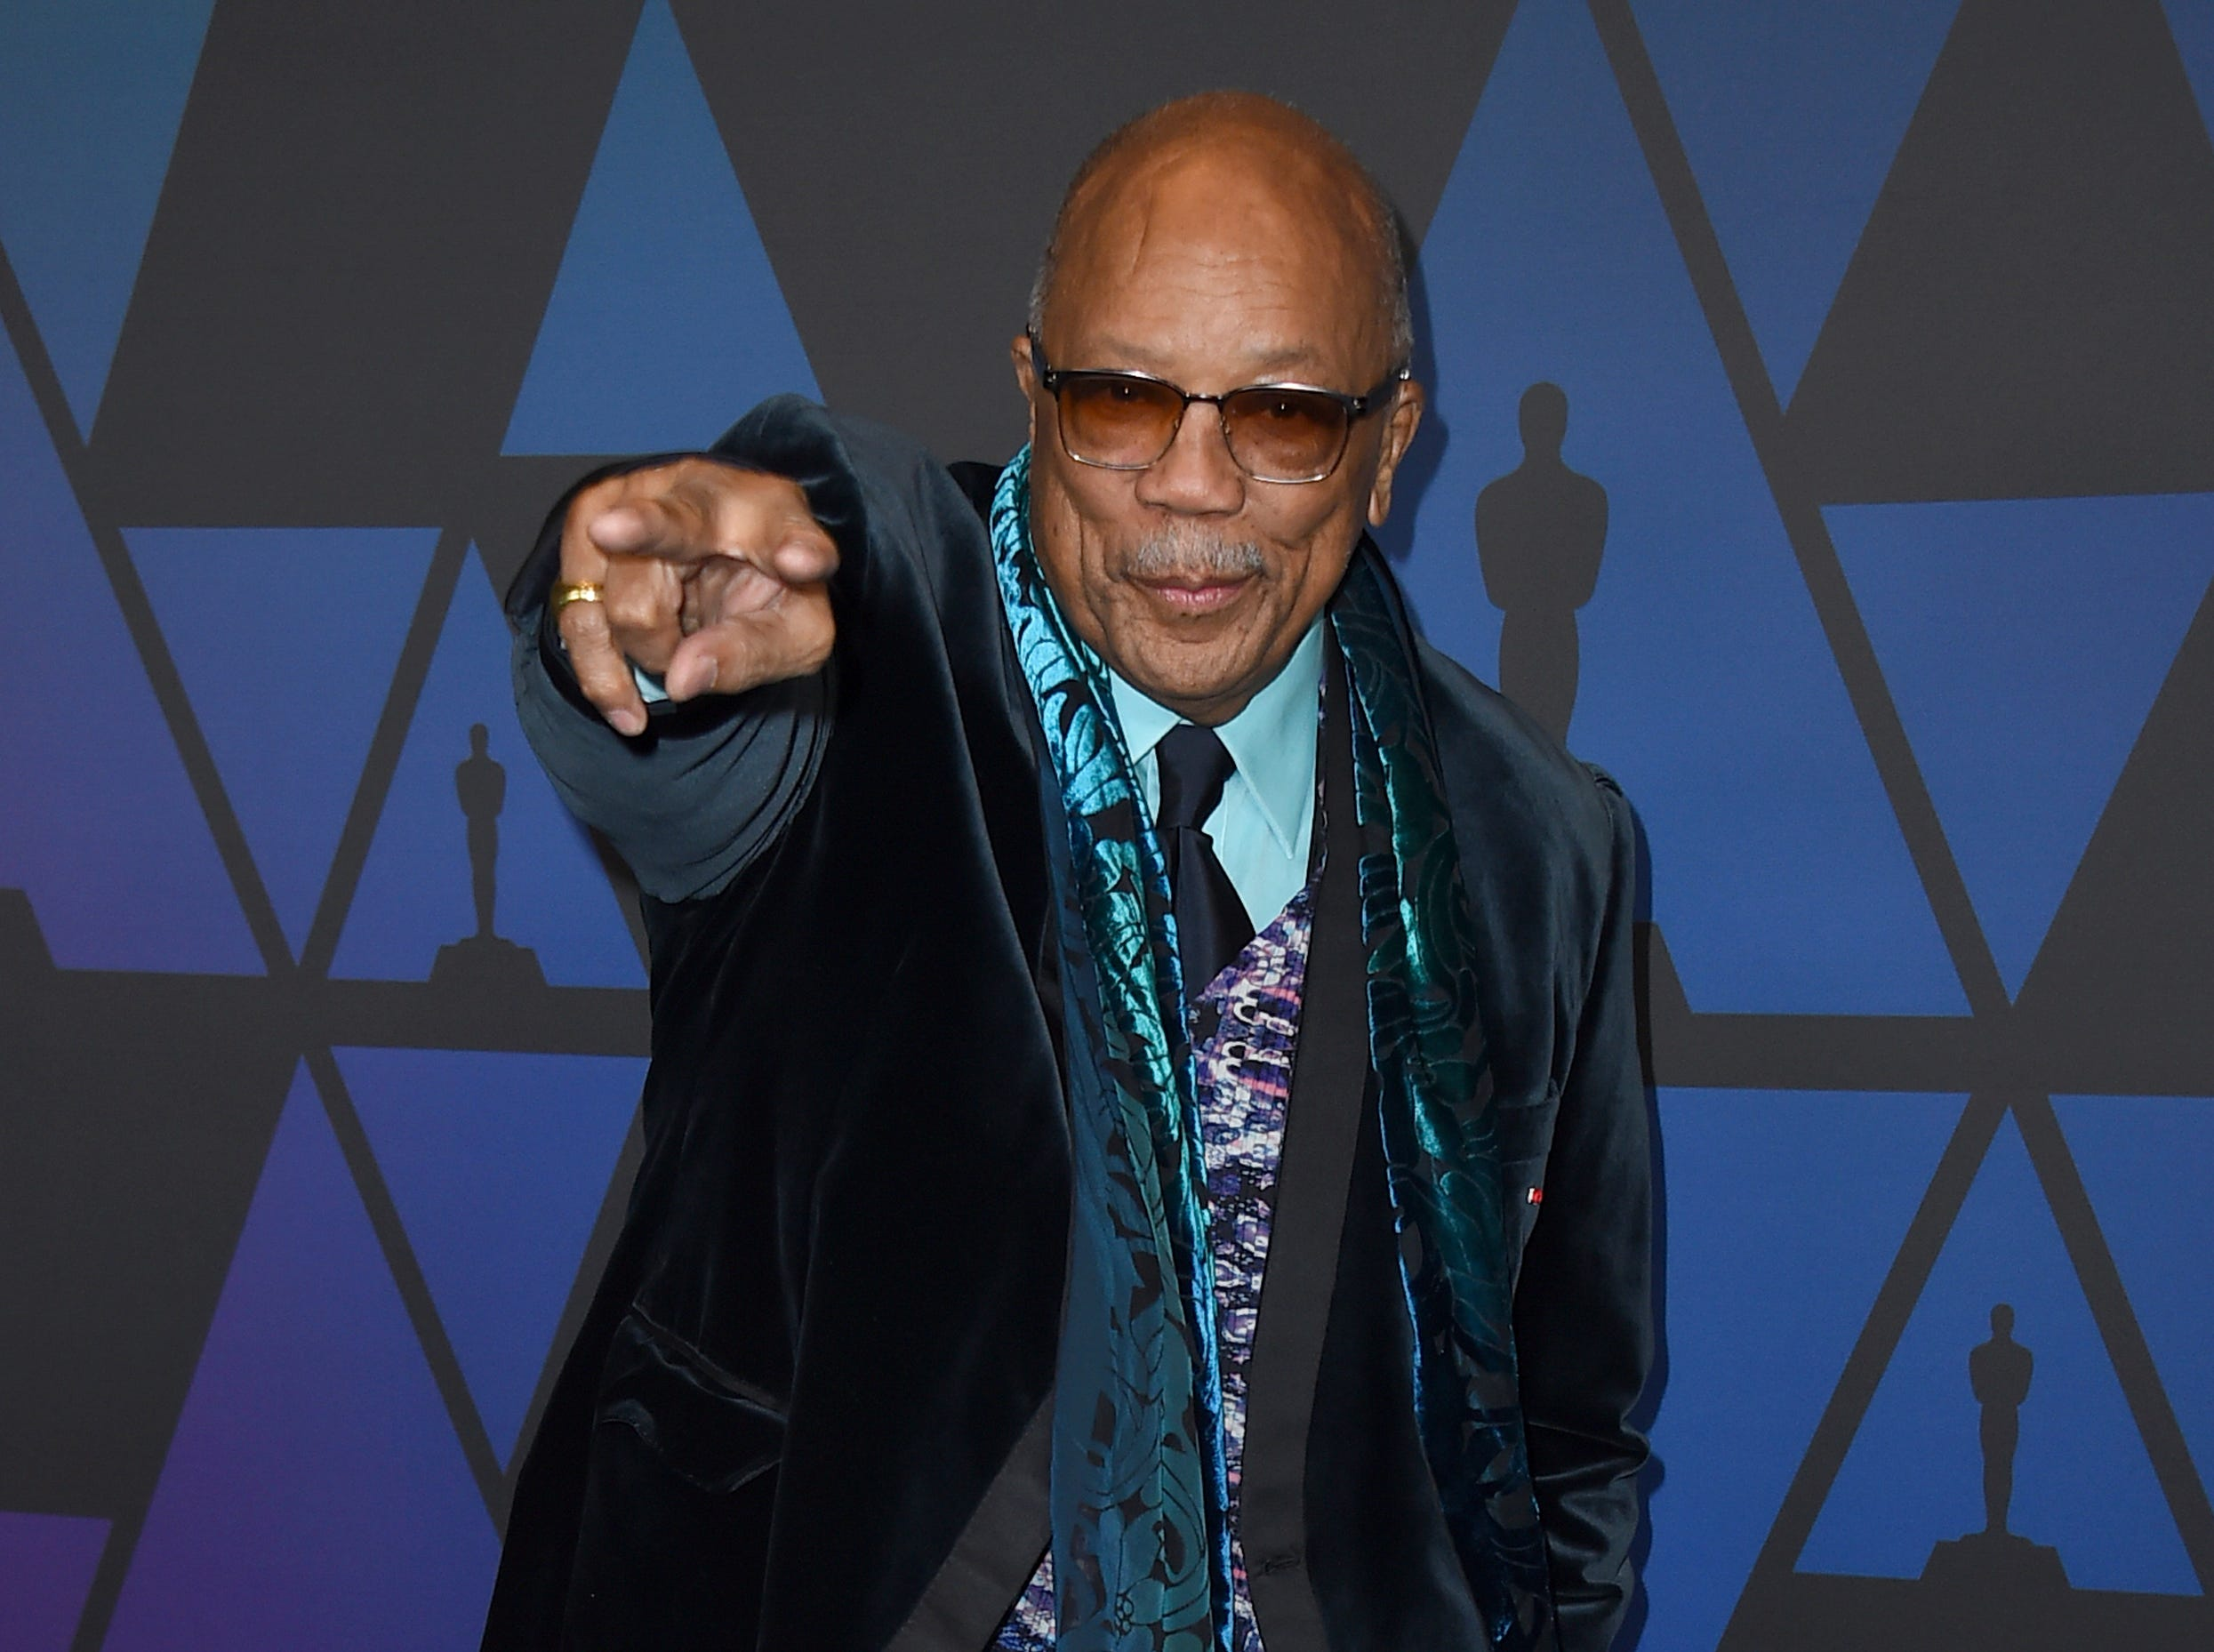 Quincy Jones arrives at the Governors Awards on Sunday, Nov. 18, 2018, at the Dolby Theatre in Los Angeles. (Photo by Jordan Strauss/Invision/AP) ORG XMIT: CAPM167